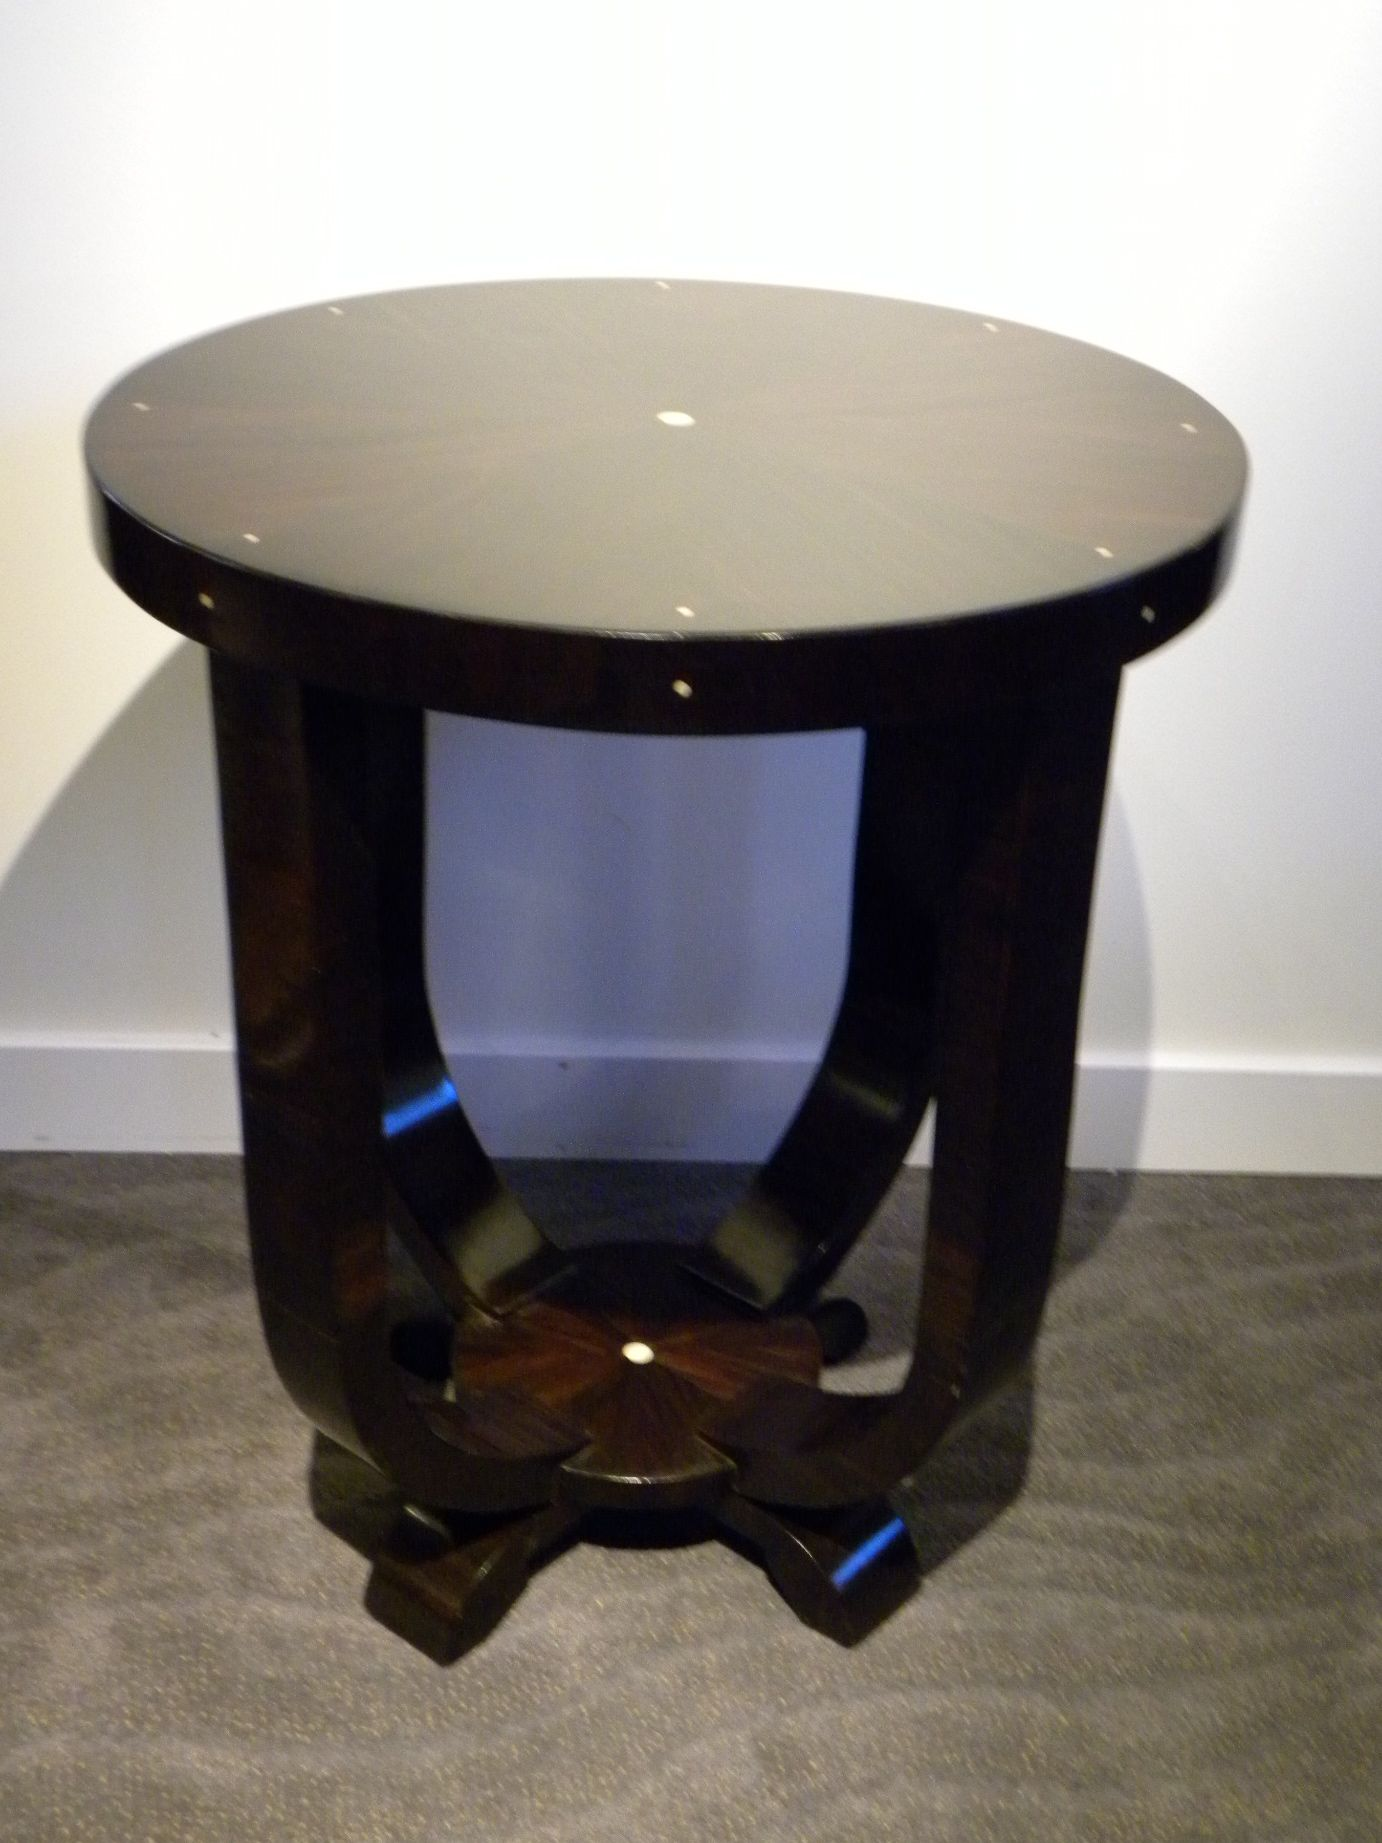 Custom art deco side table sold items small tables art for Petite table deco